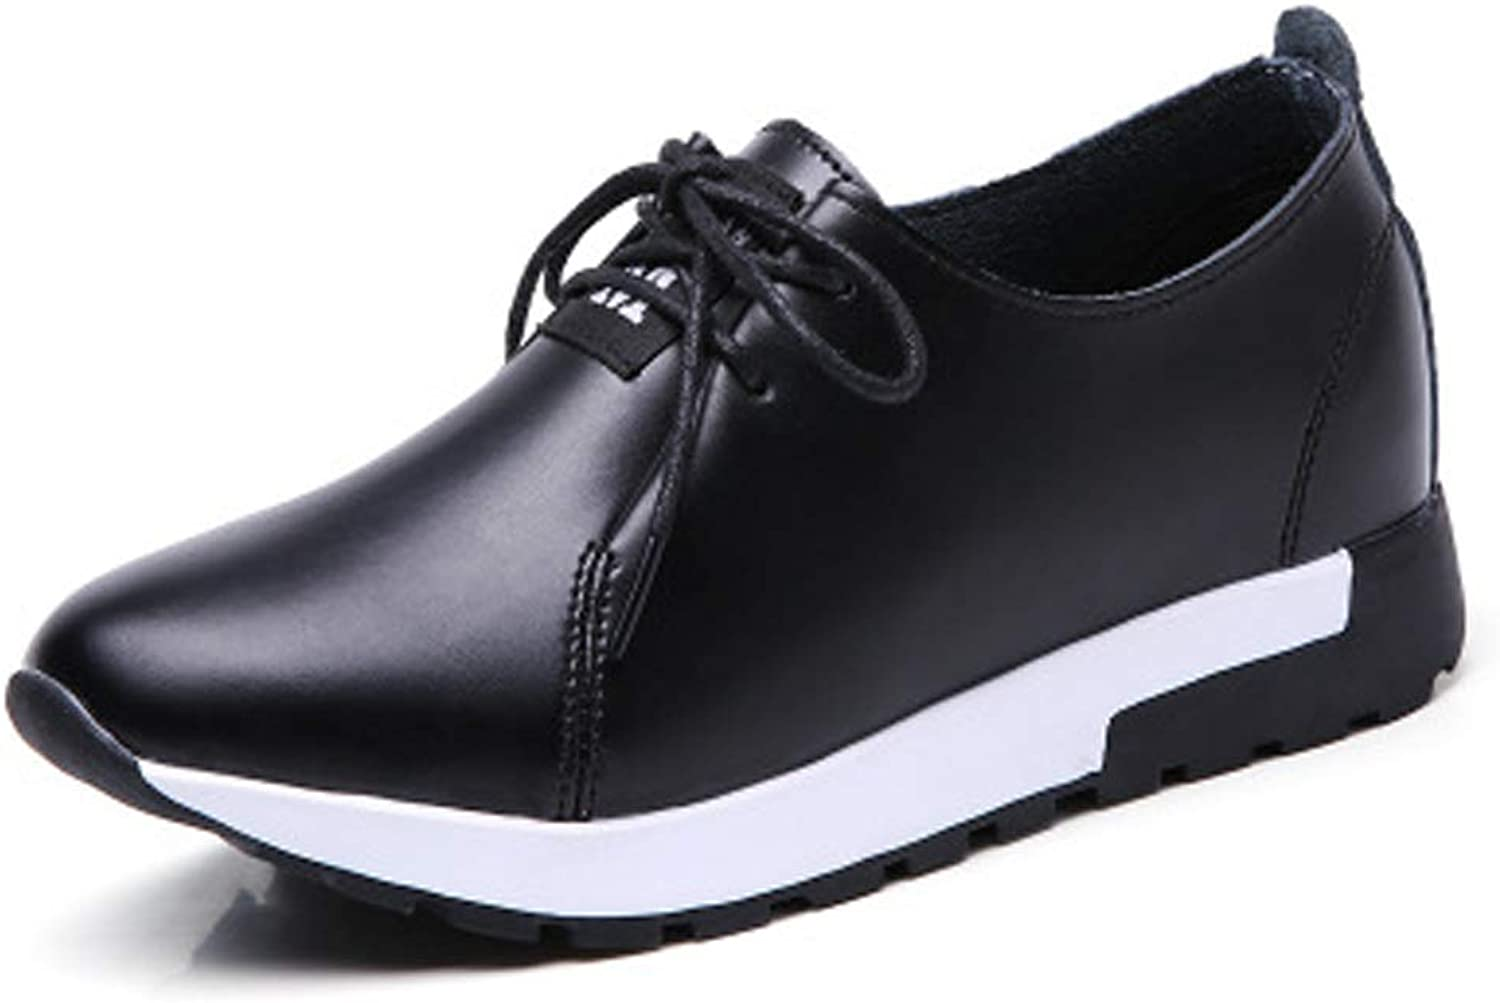 Flat Casual shoes Comfortable Leather Non-Slip Lacing Women's shoes.